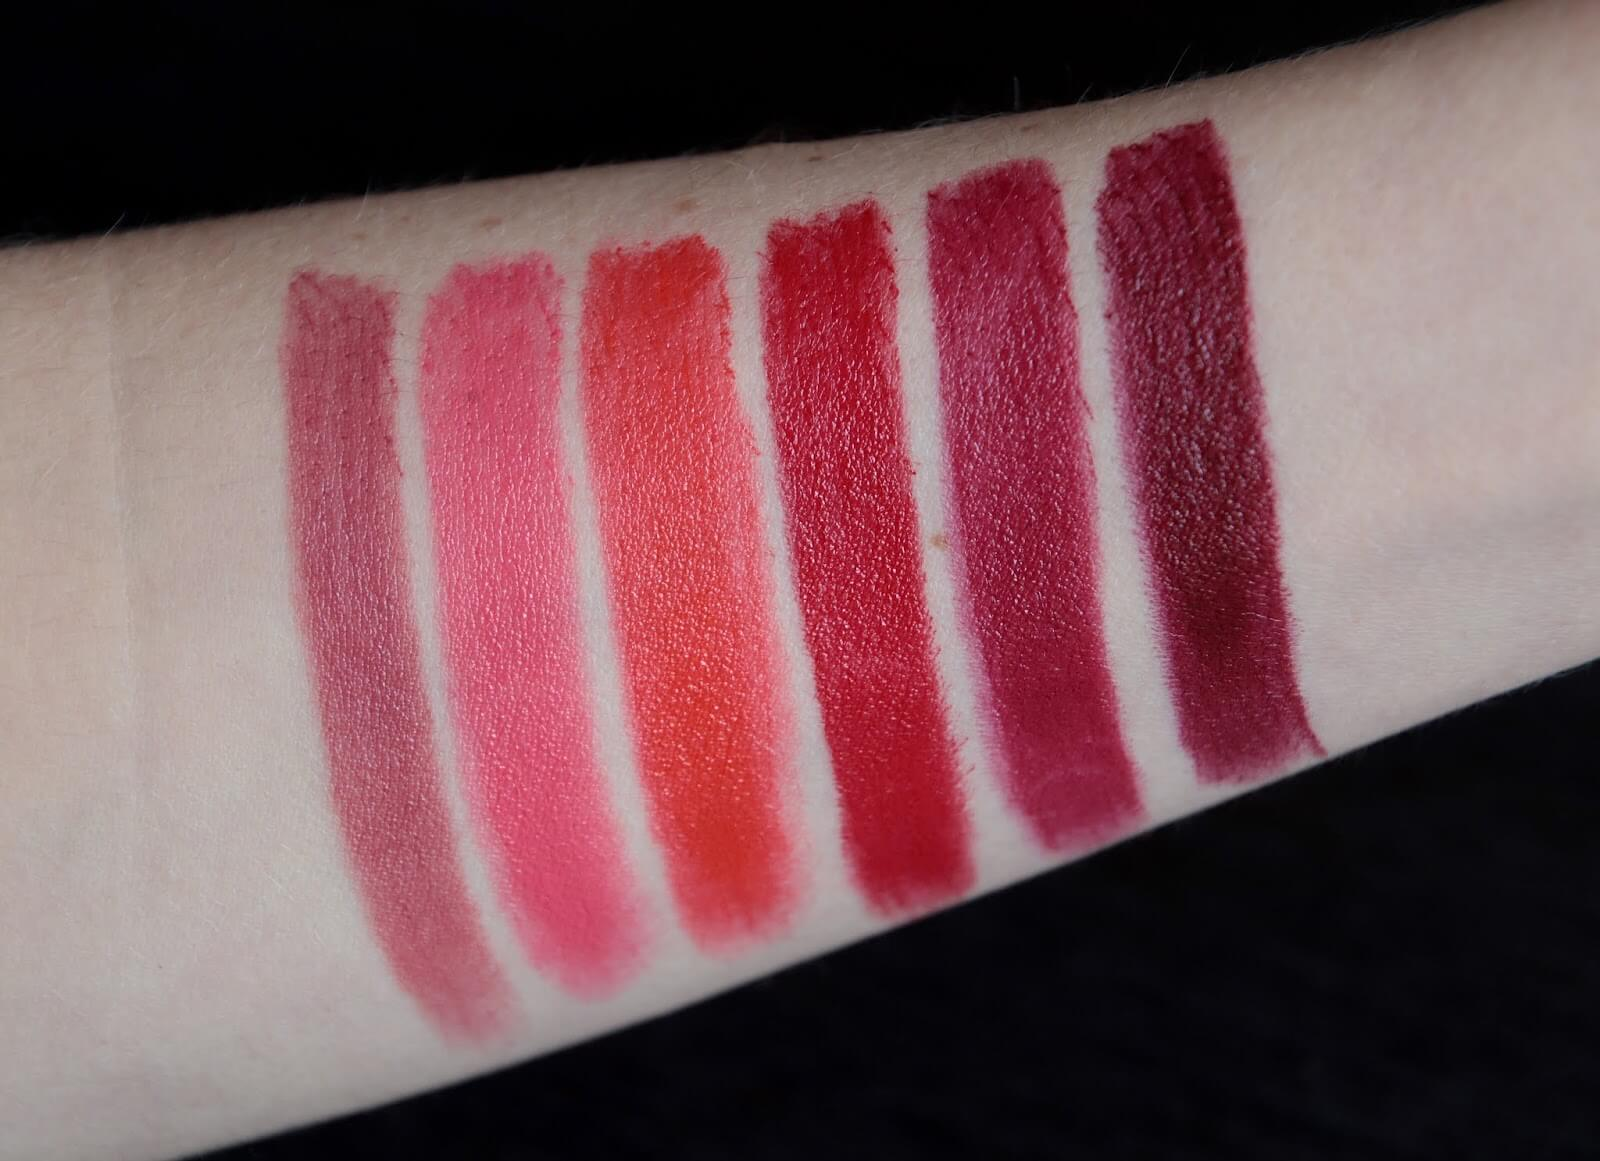 chanel rouge allure intense swatch 807 817 827 837 847 857 swatch